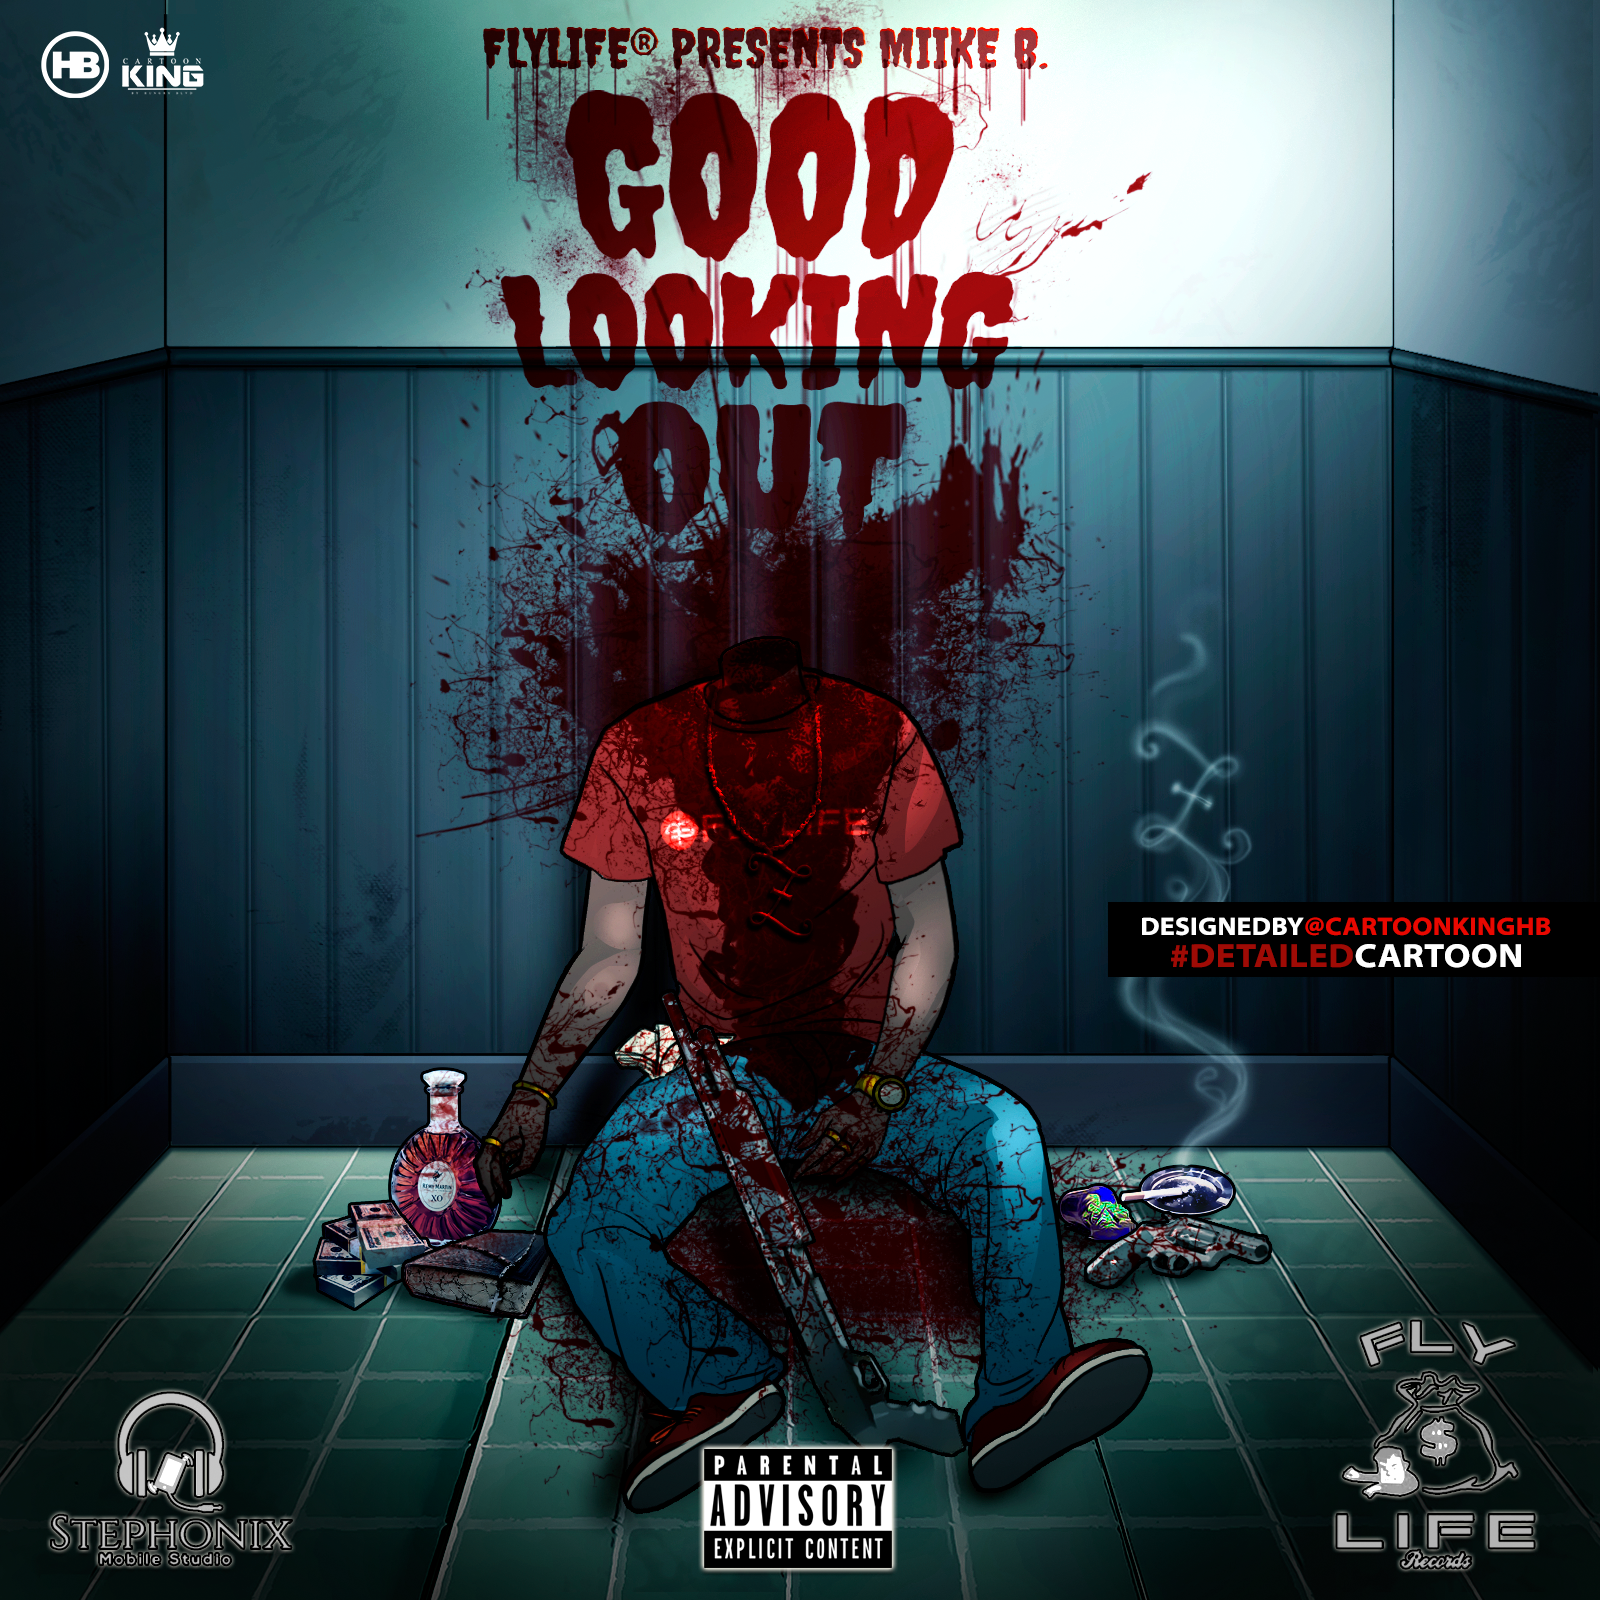 The Hottest Mixtape Cover Designers On The Planet Get Yours